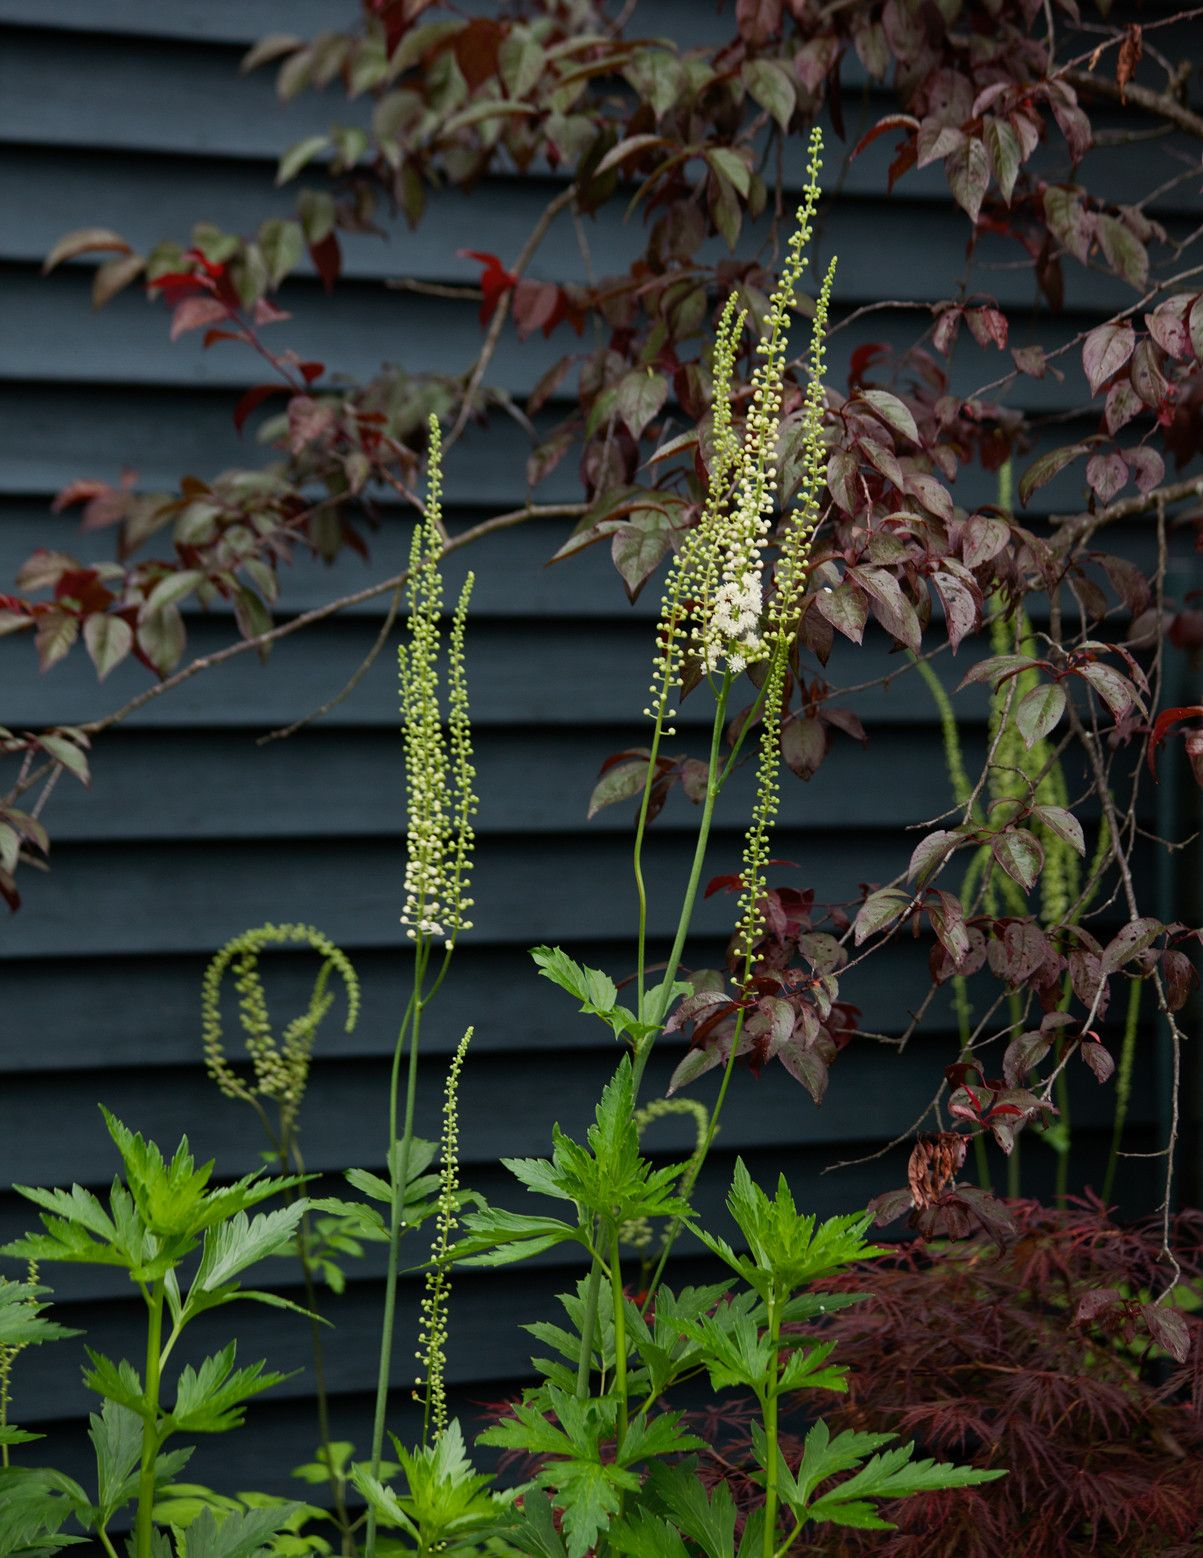 Graceful stalks of Cimicifuga racemosa burst upward in brilliant contrast to the inky exterior of a poolhouse. | Lonny June 2014